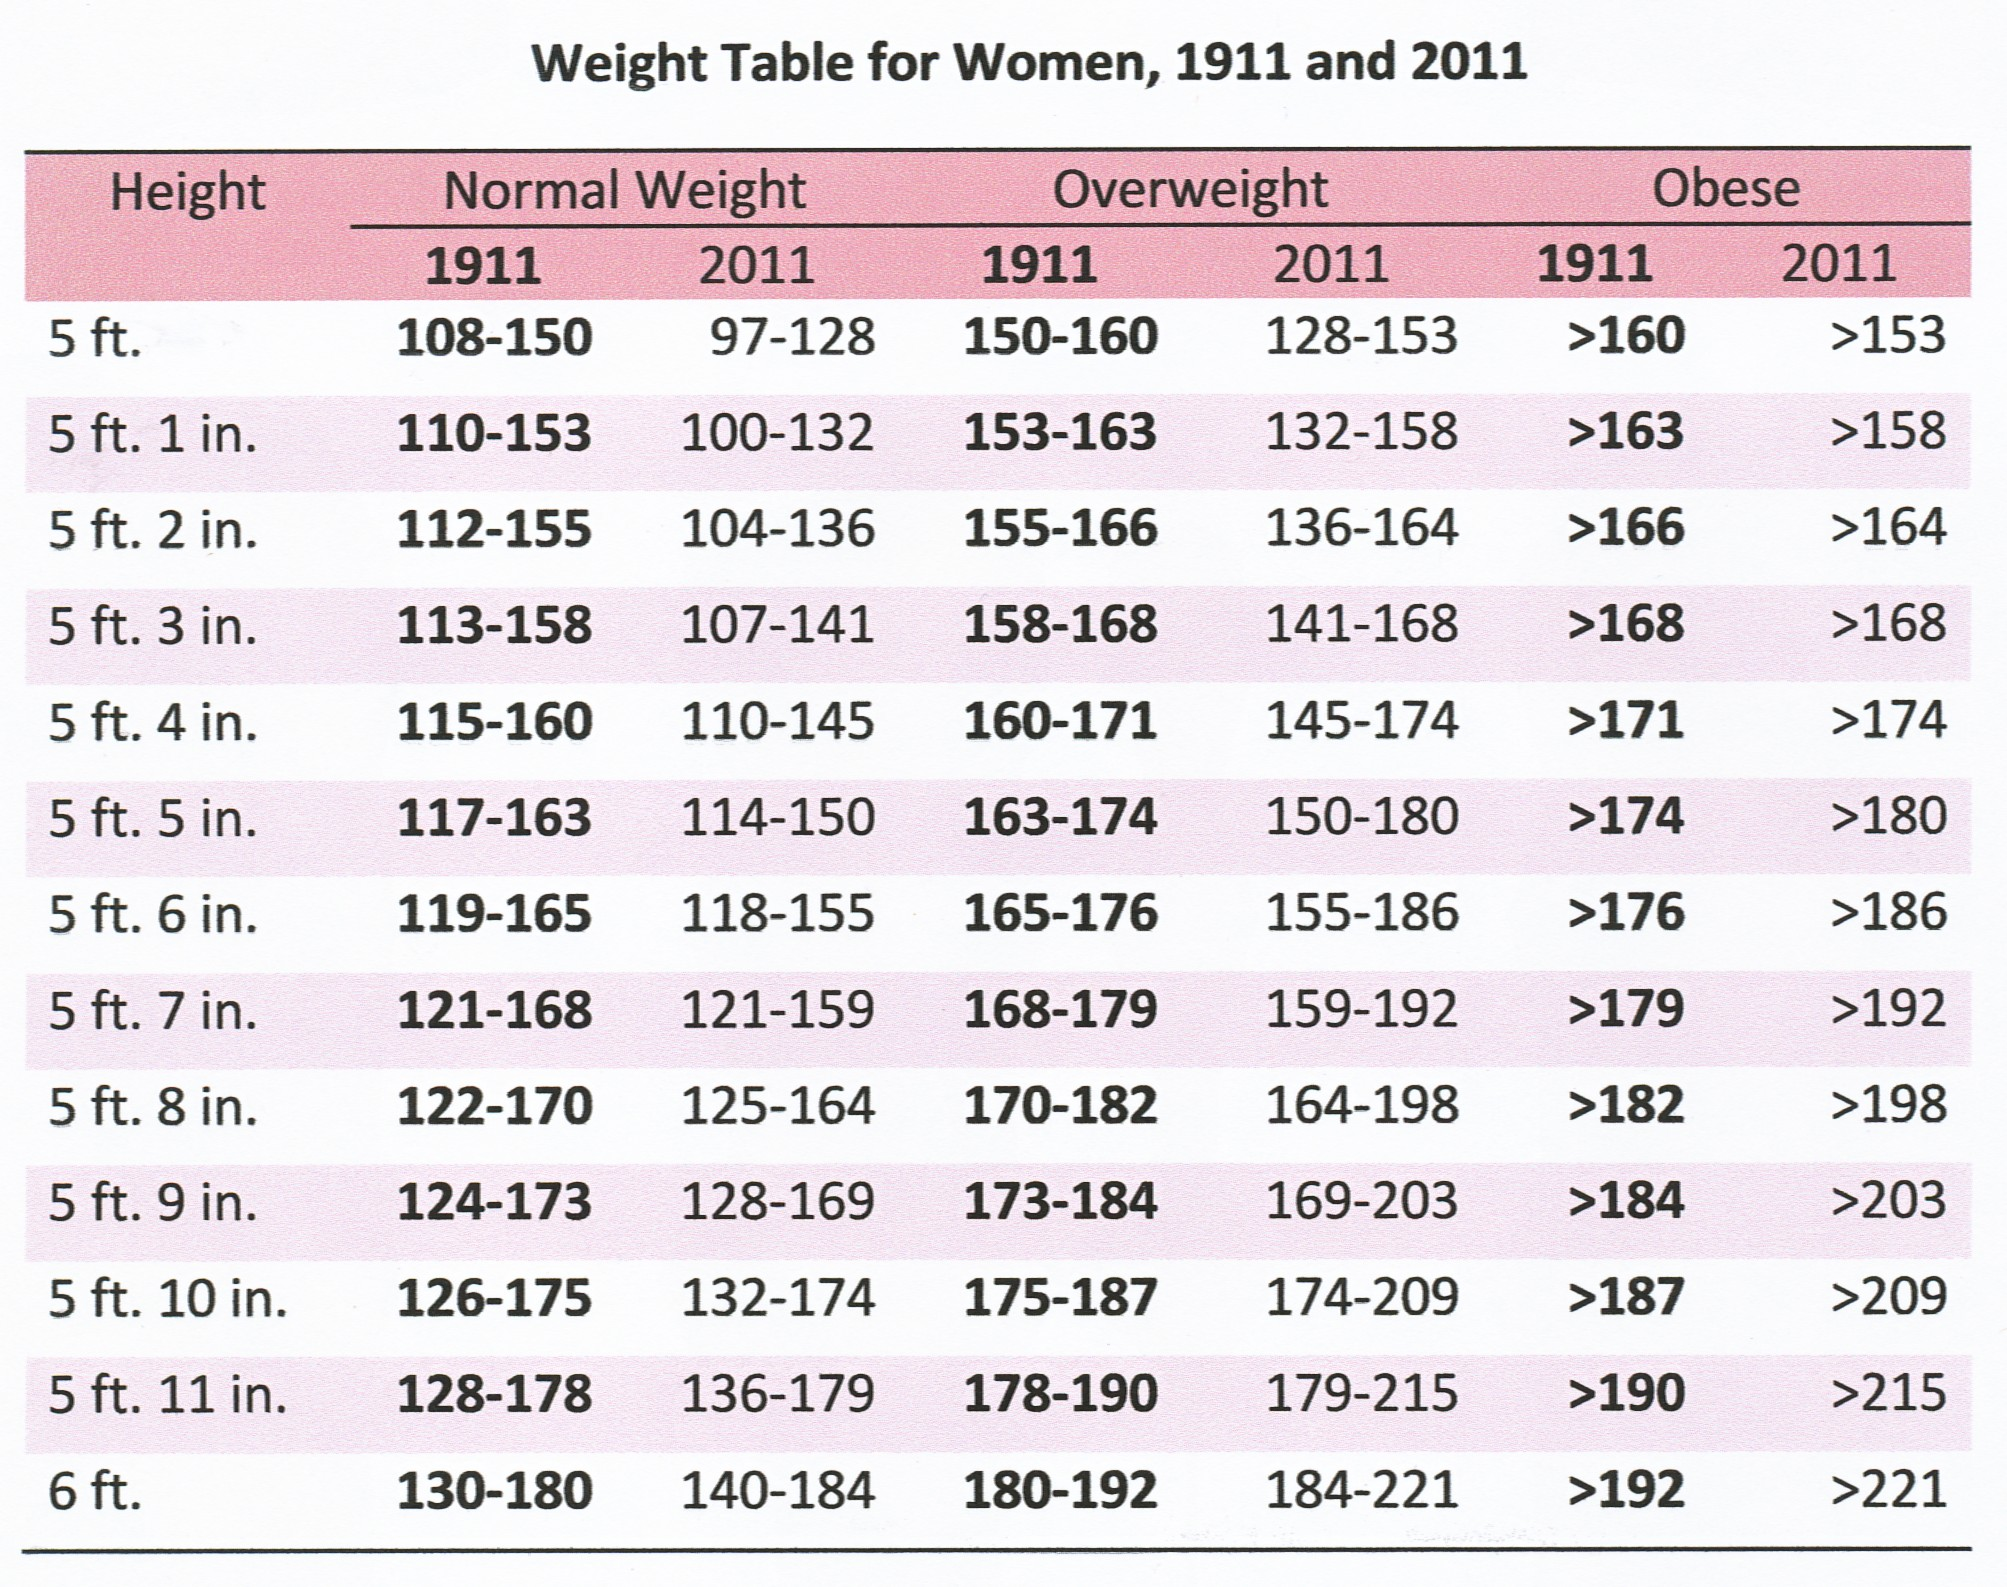 obesity charts by height seatle davidjoel co